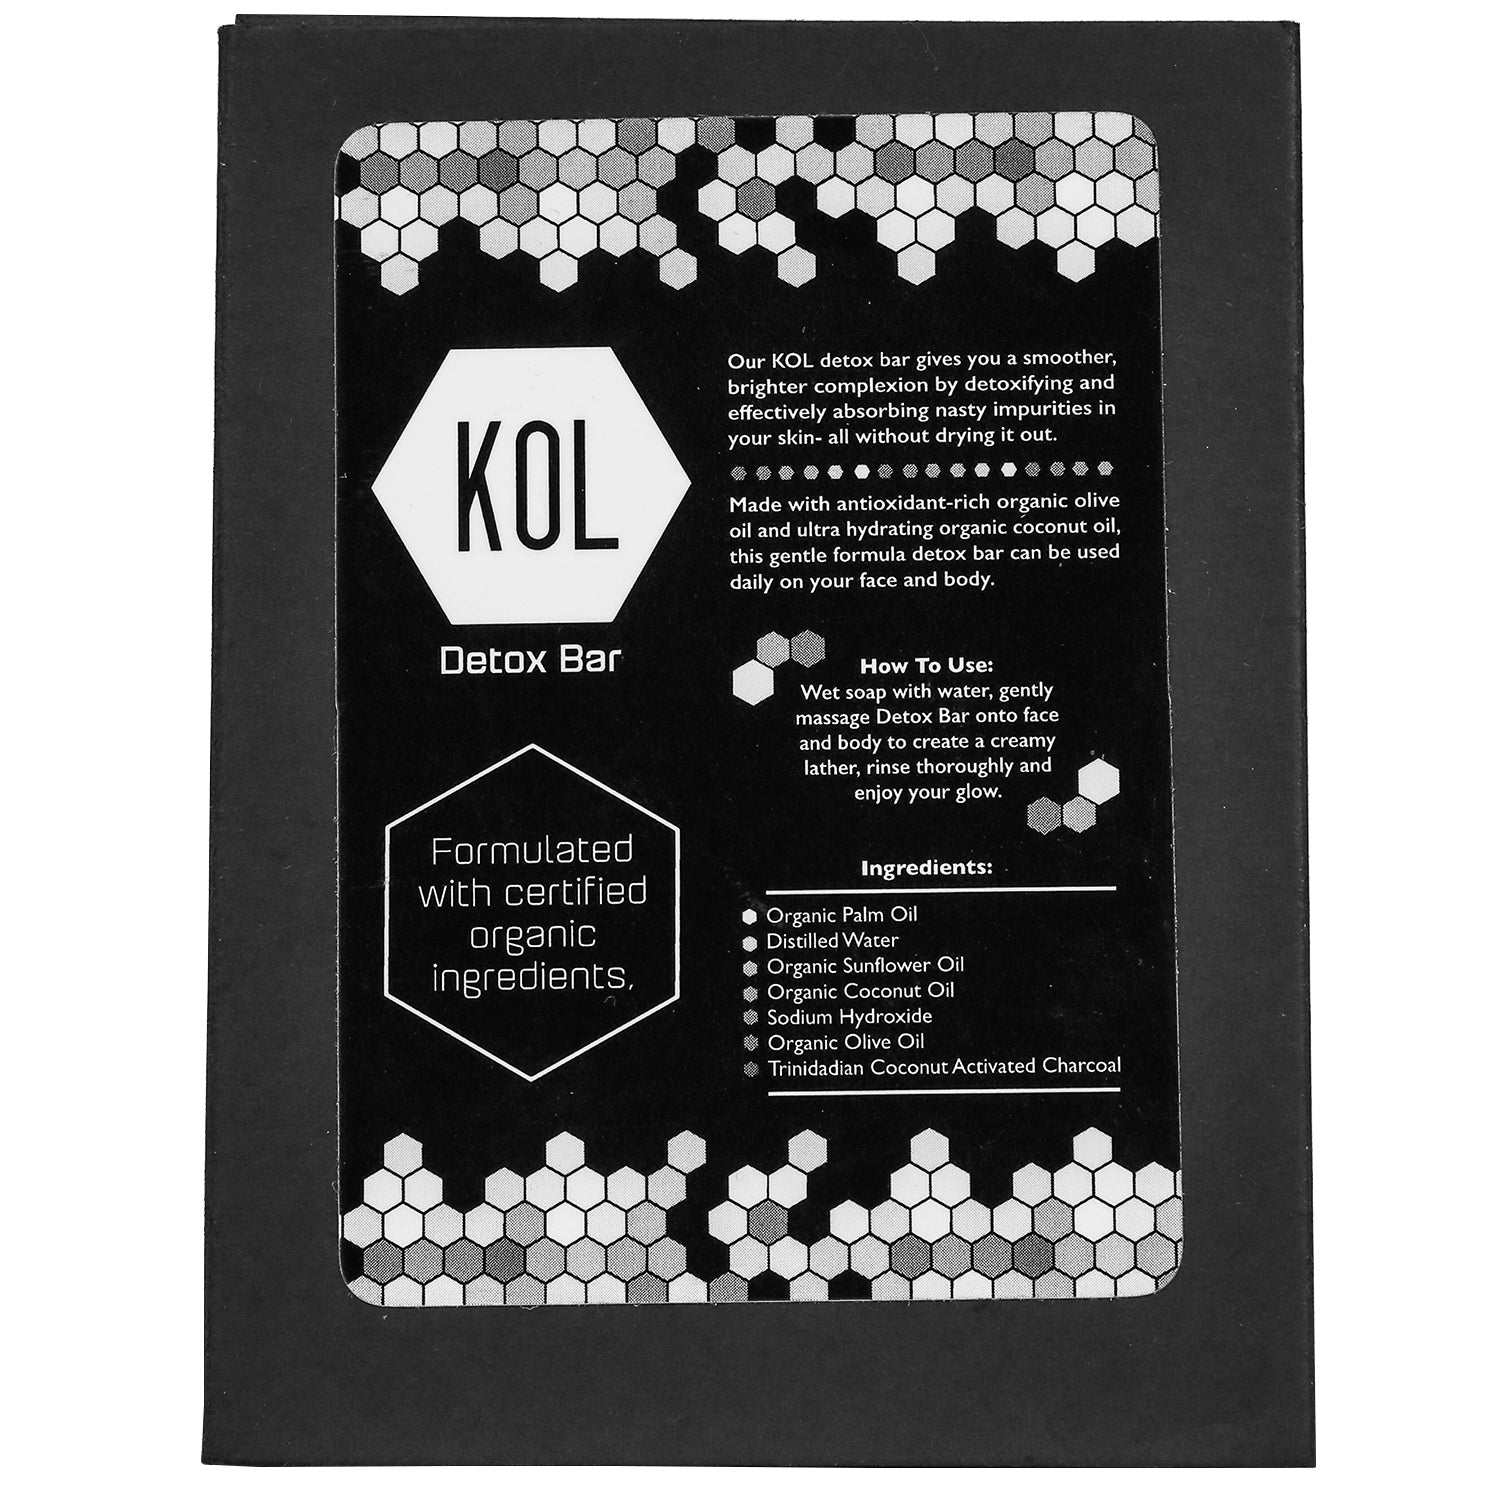 Detox Bar - KOL KARE | The #1 All Natural, Premium Charcoal Brand. Made in Miami.